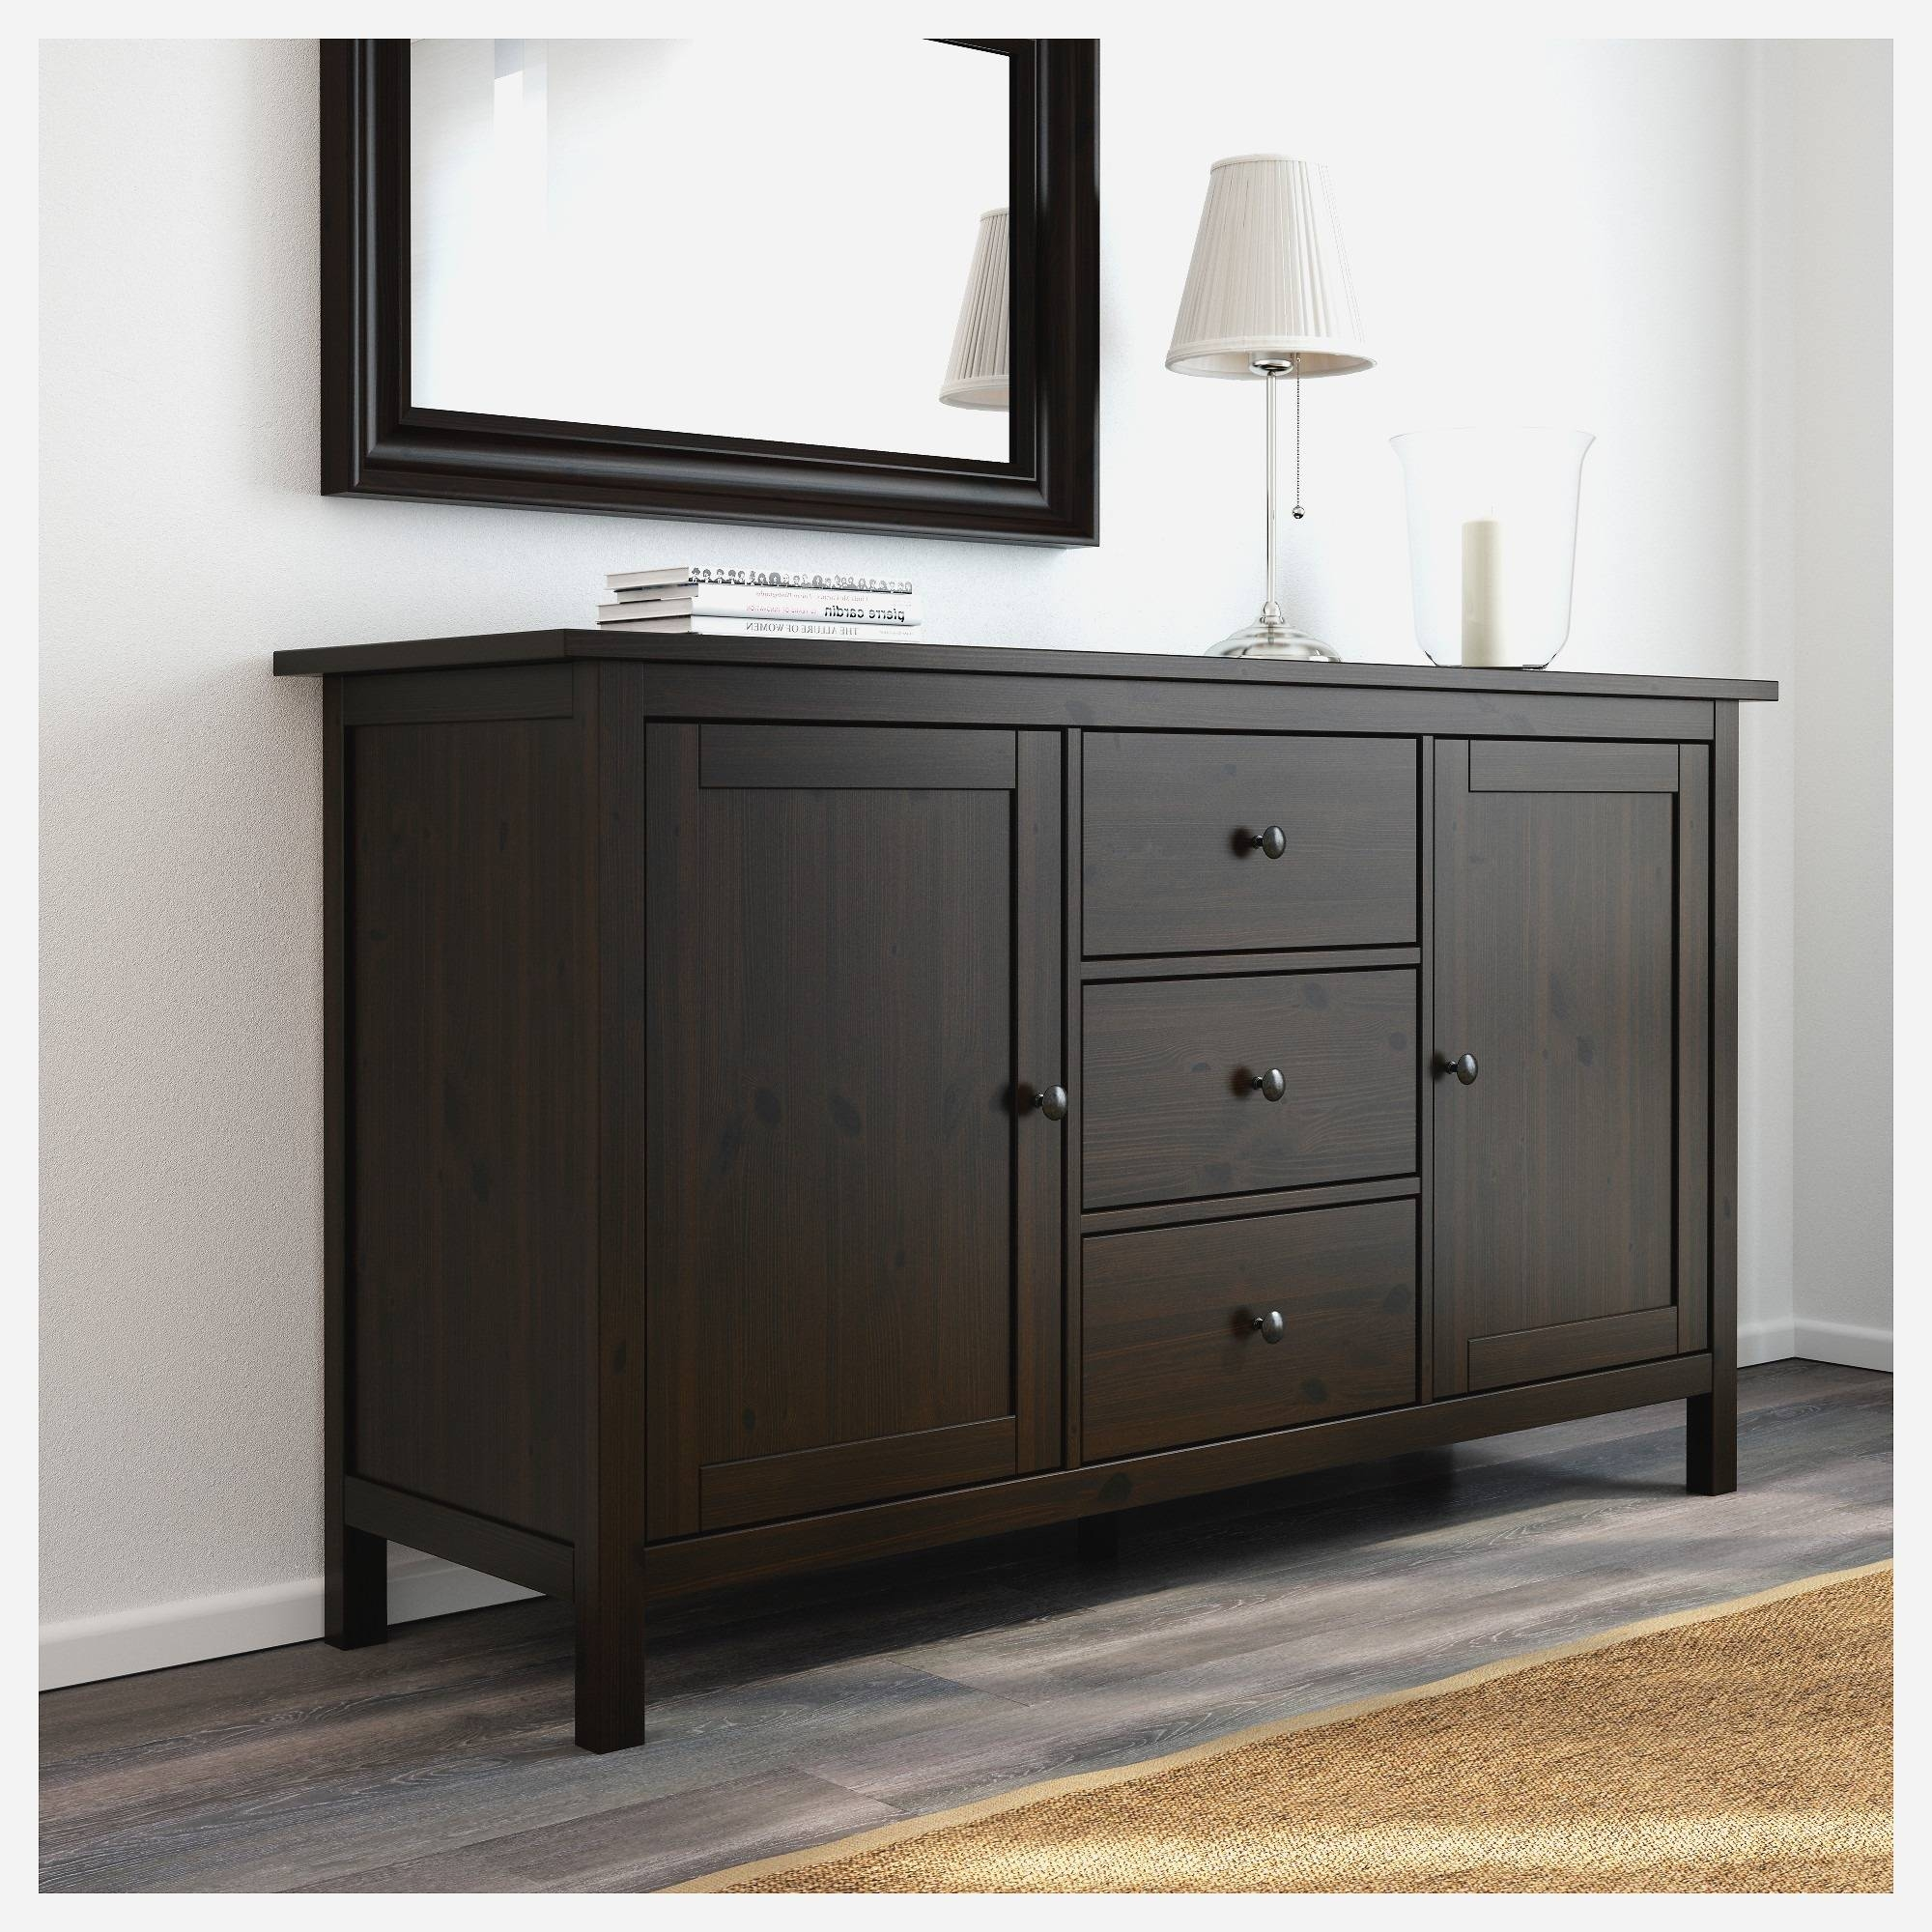 Small Buffets And Sideboards: Small Buffets And Sideboards Most Inside Latest Black Brown Sideboards (#15 of 15)